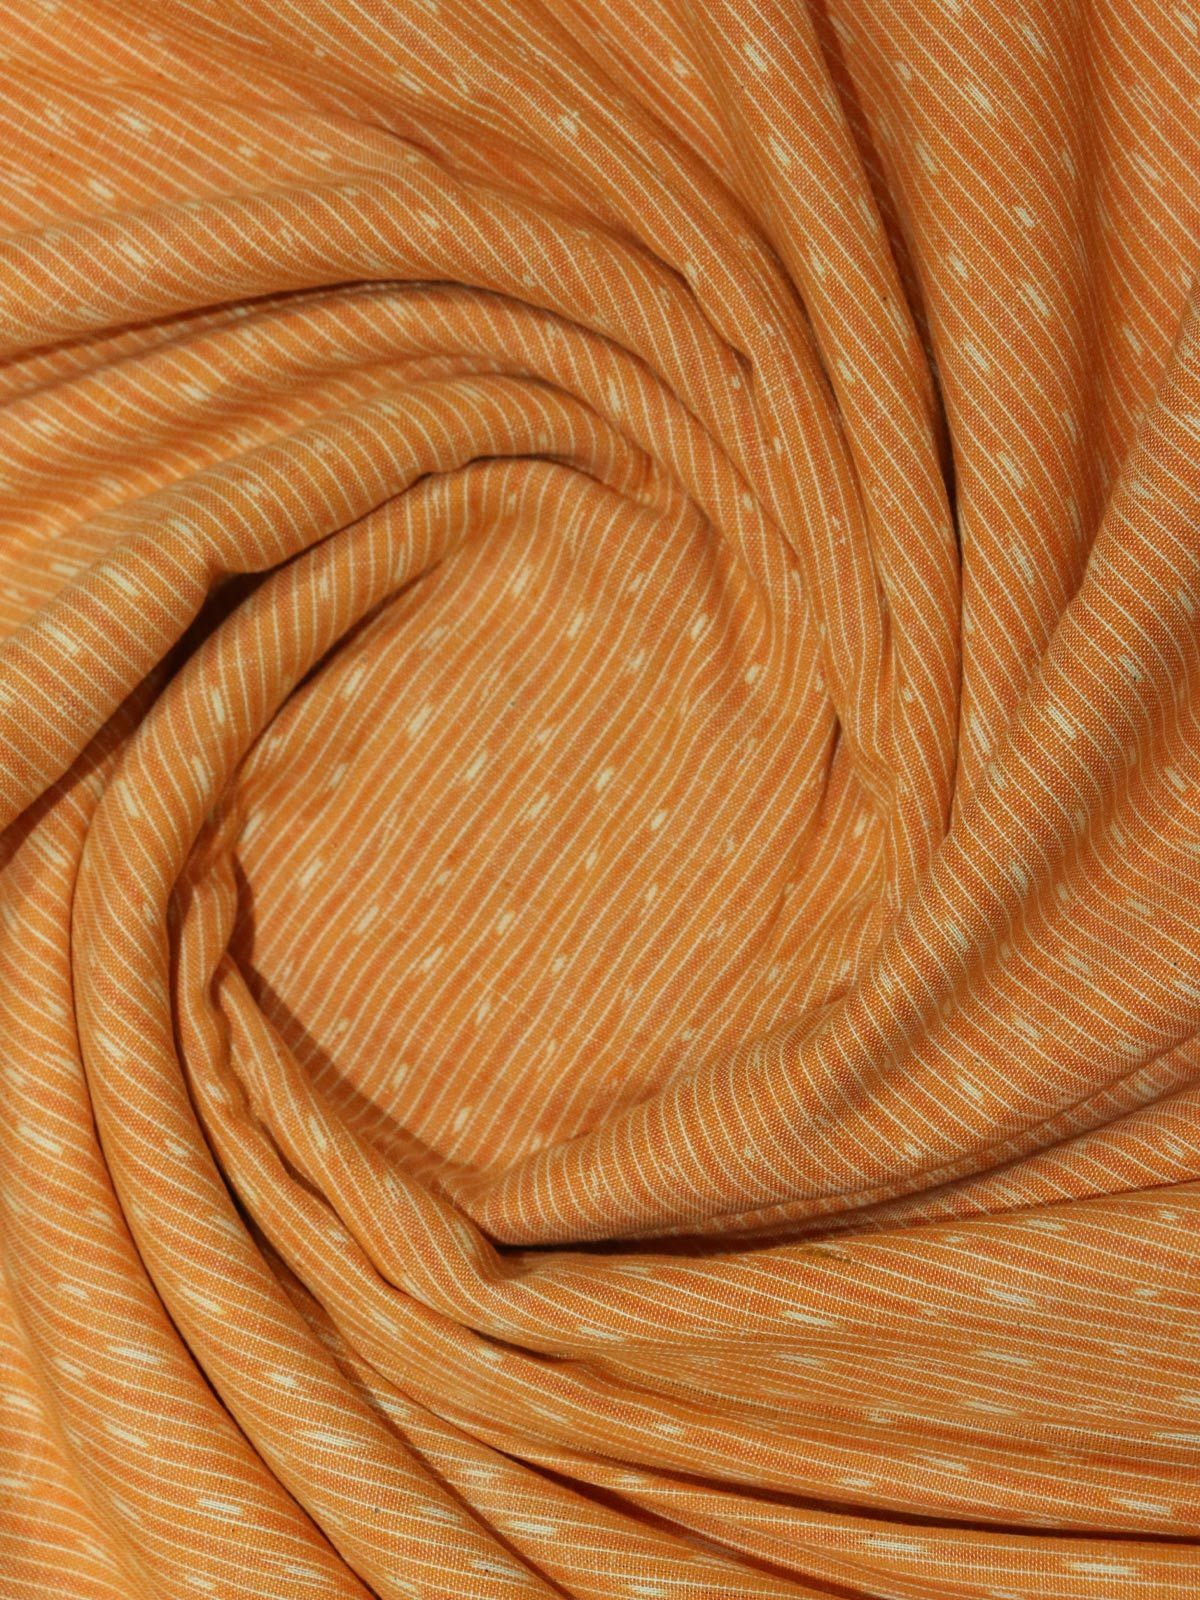 Soft Orange handloom ikat cotton fabric